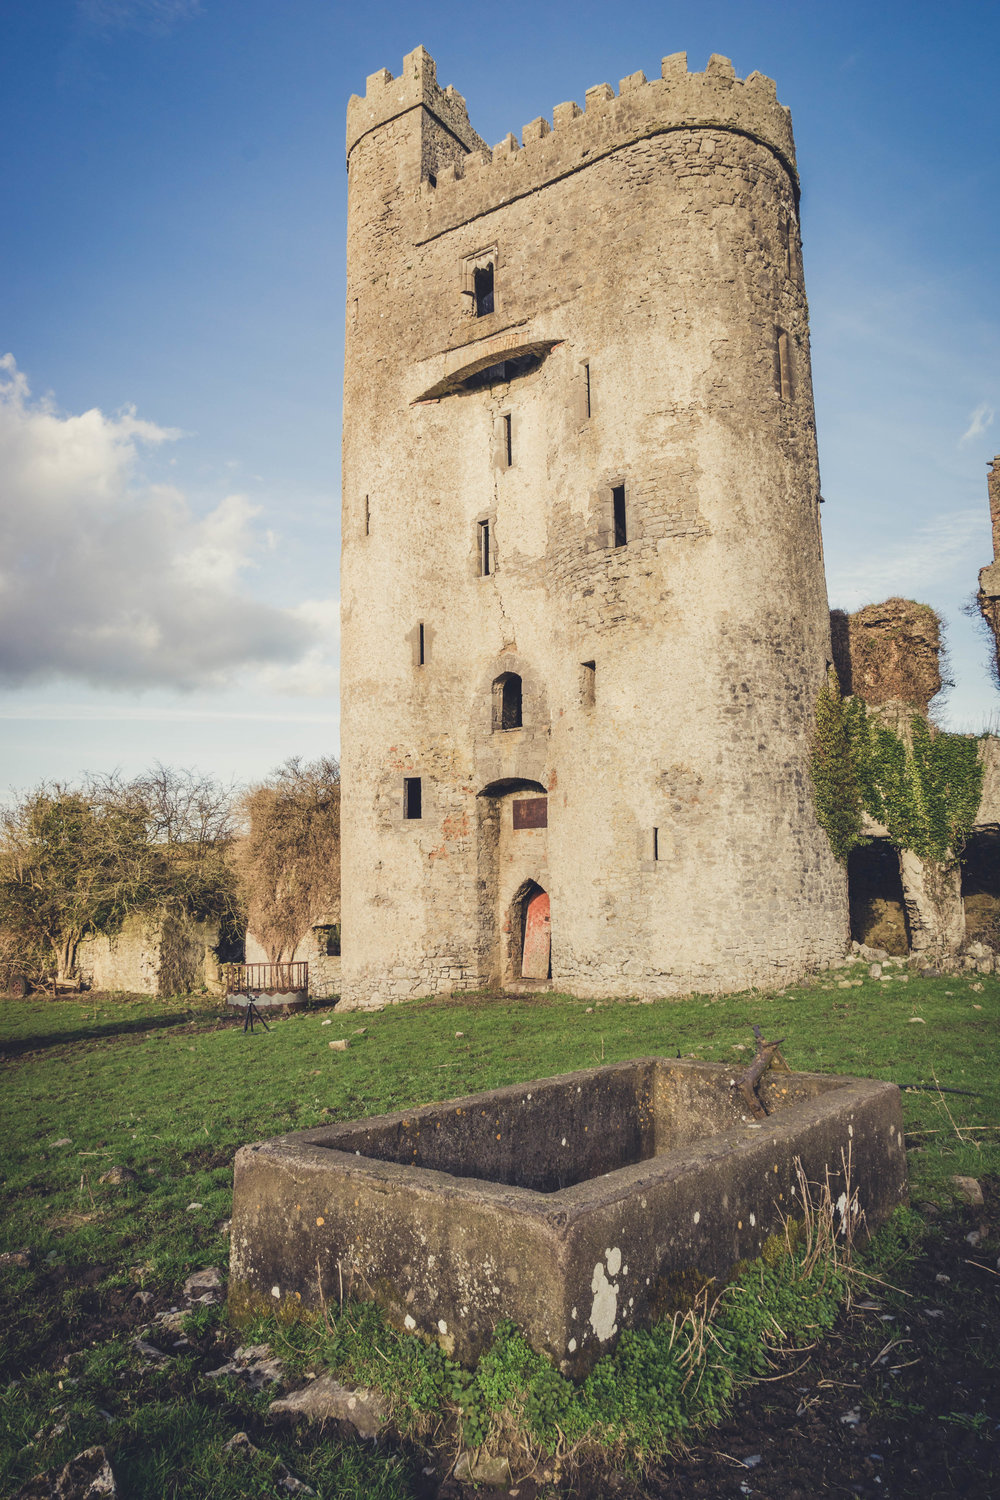 Ireland. Castle. Old castle. irish history. history. Rock of Dunamase. blue sky. rock. pathway. adventure. travel. irish counrty. Ballyadams castle.  old castle fr.jpg